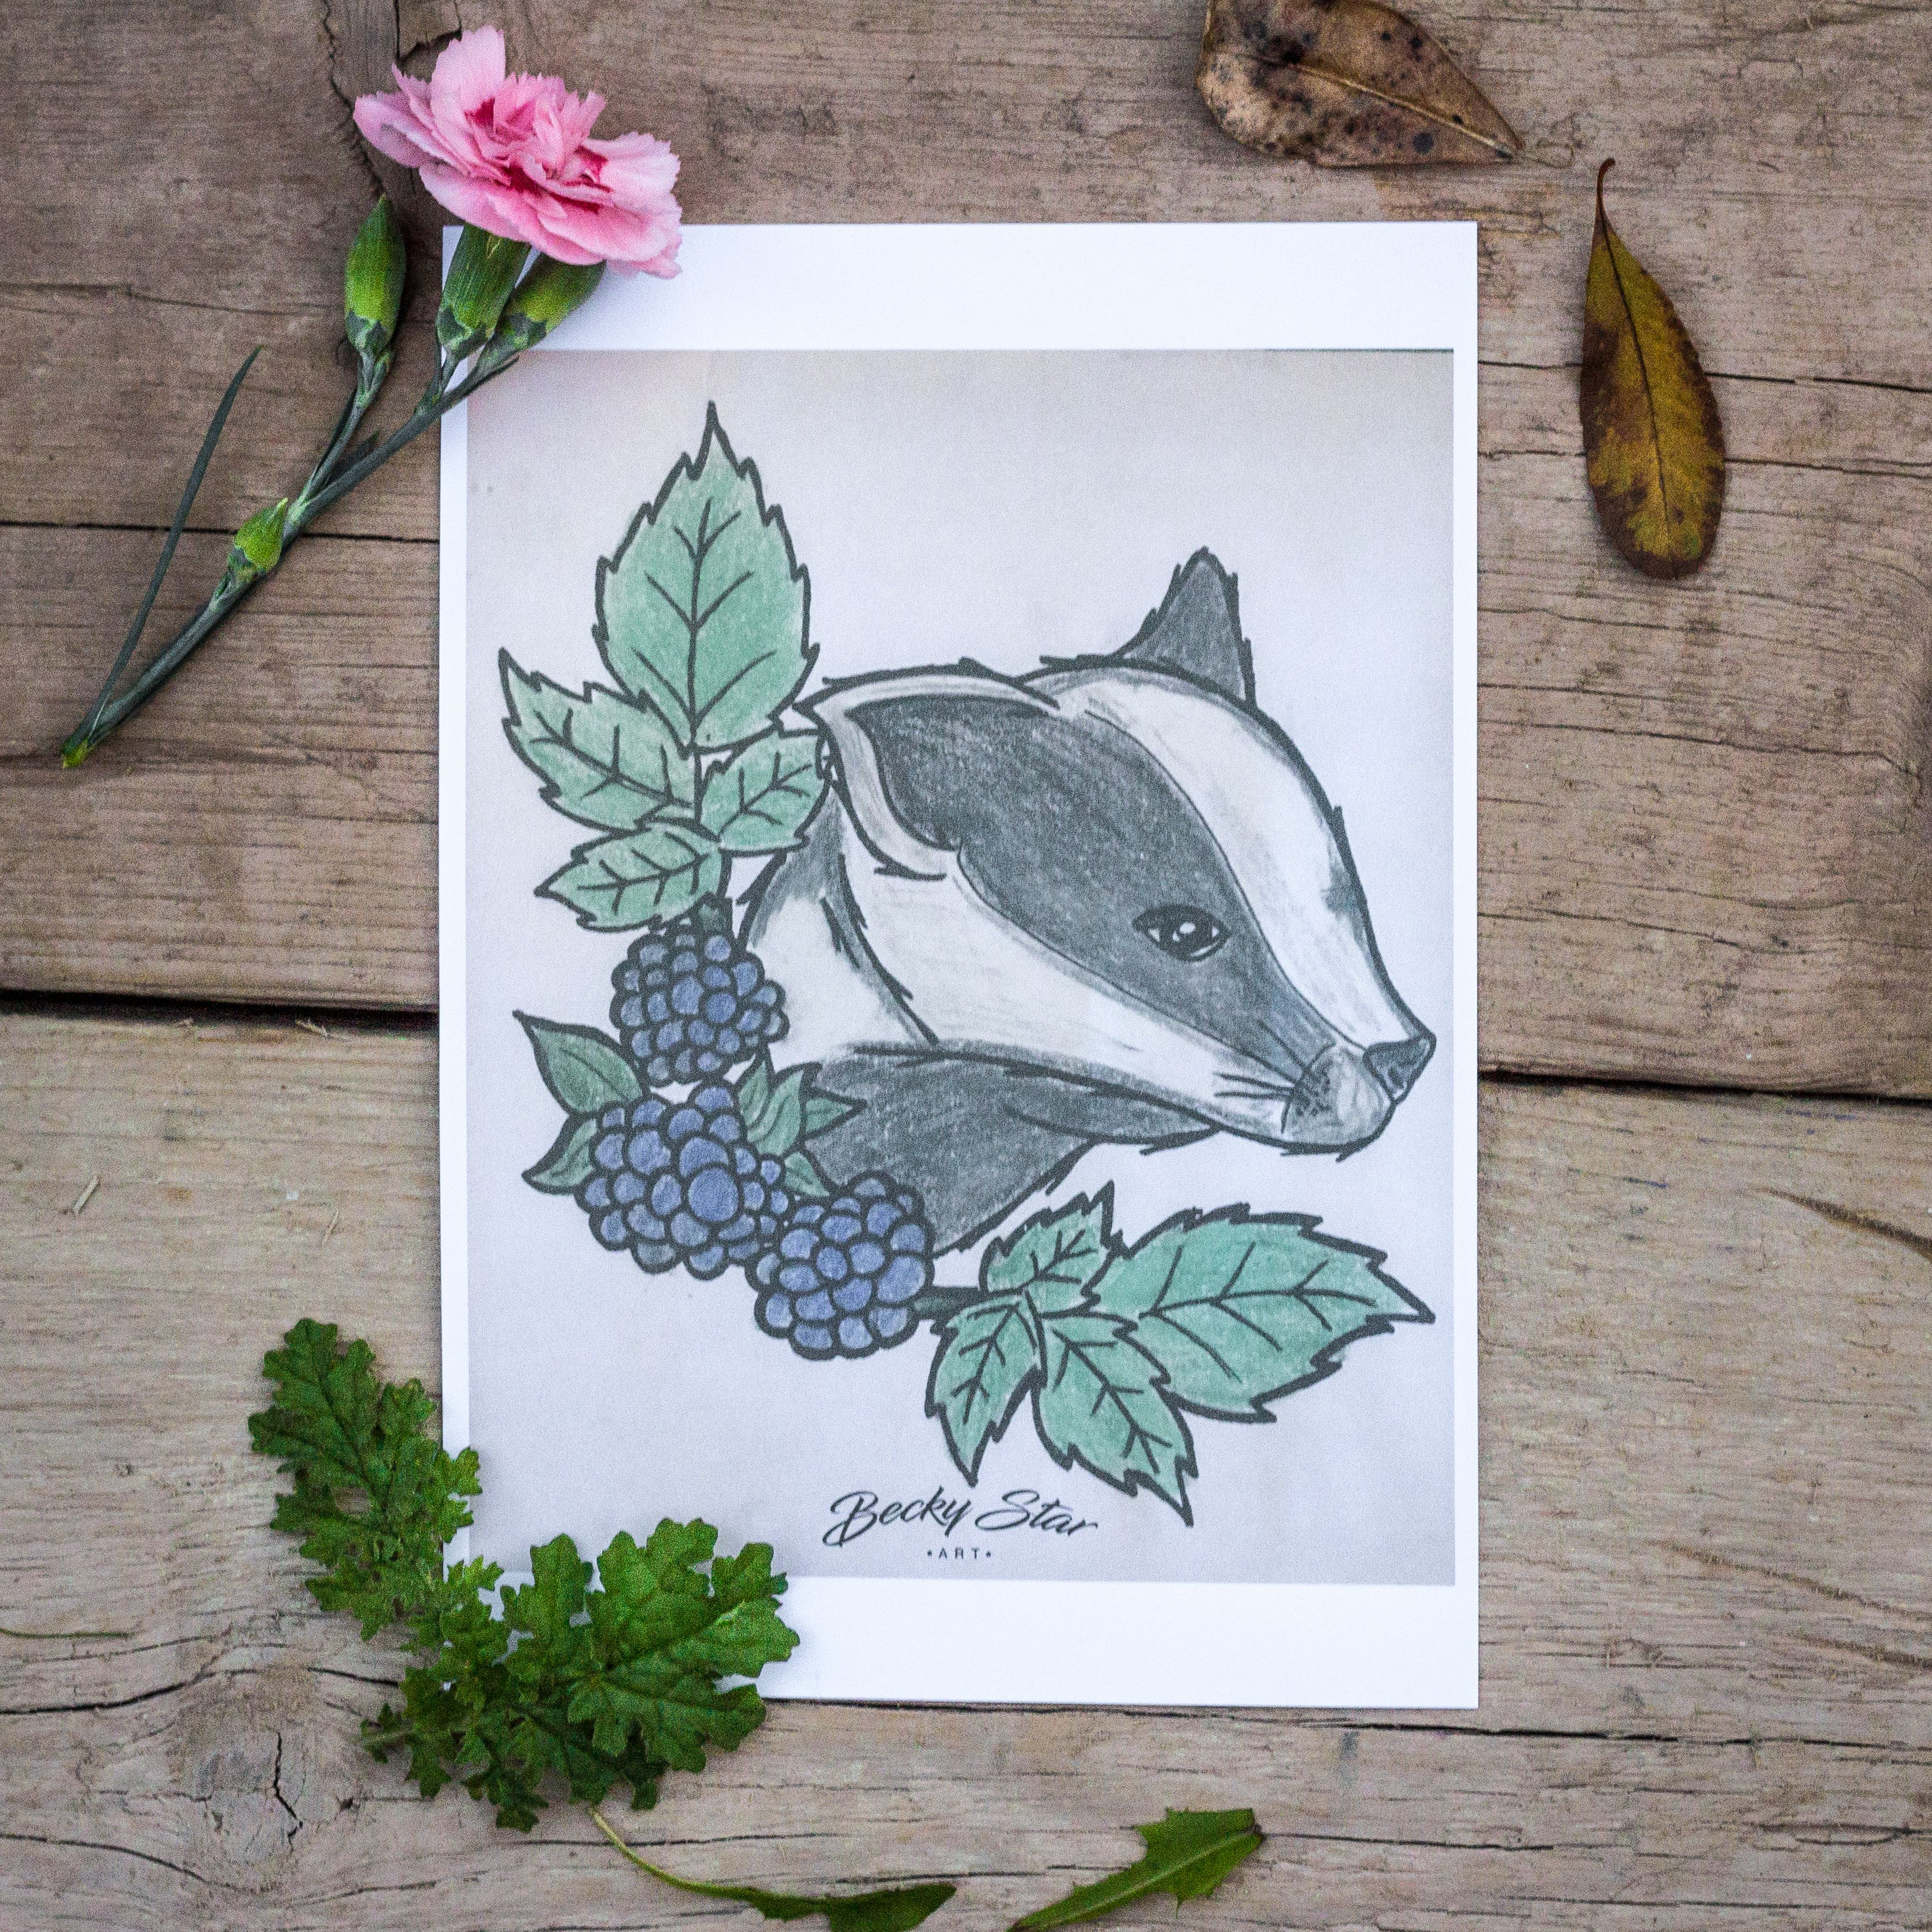 badger prints art